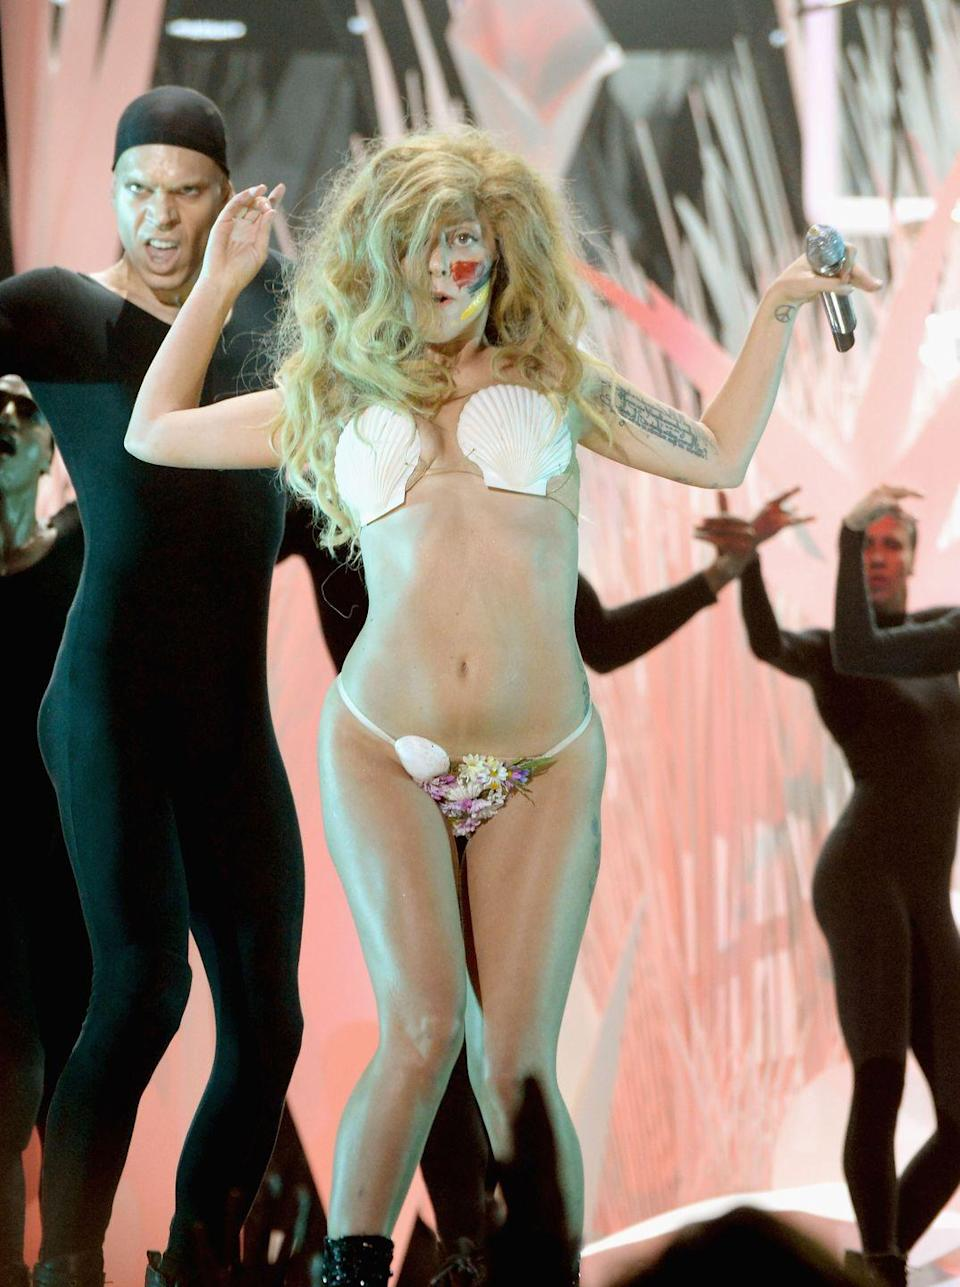 <p>Just when you thought Lady Gaga couldn't wear anything more outrageous, she rocked up at the 2013 VMAs dressed in nothing more than a few shells.</p>